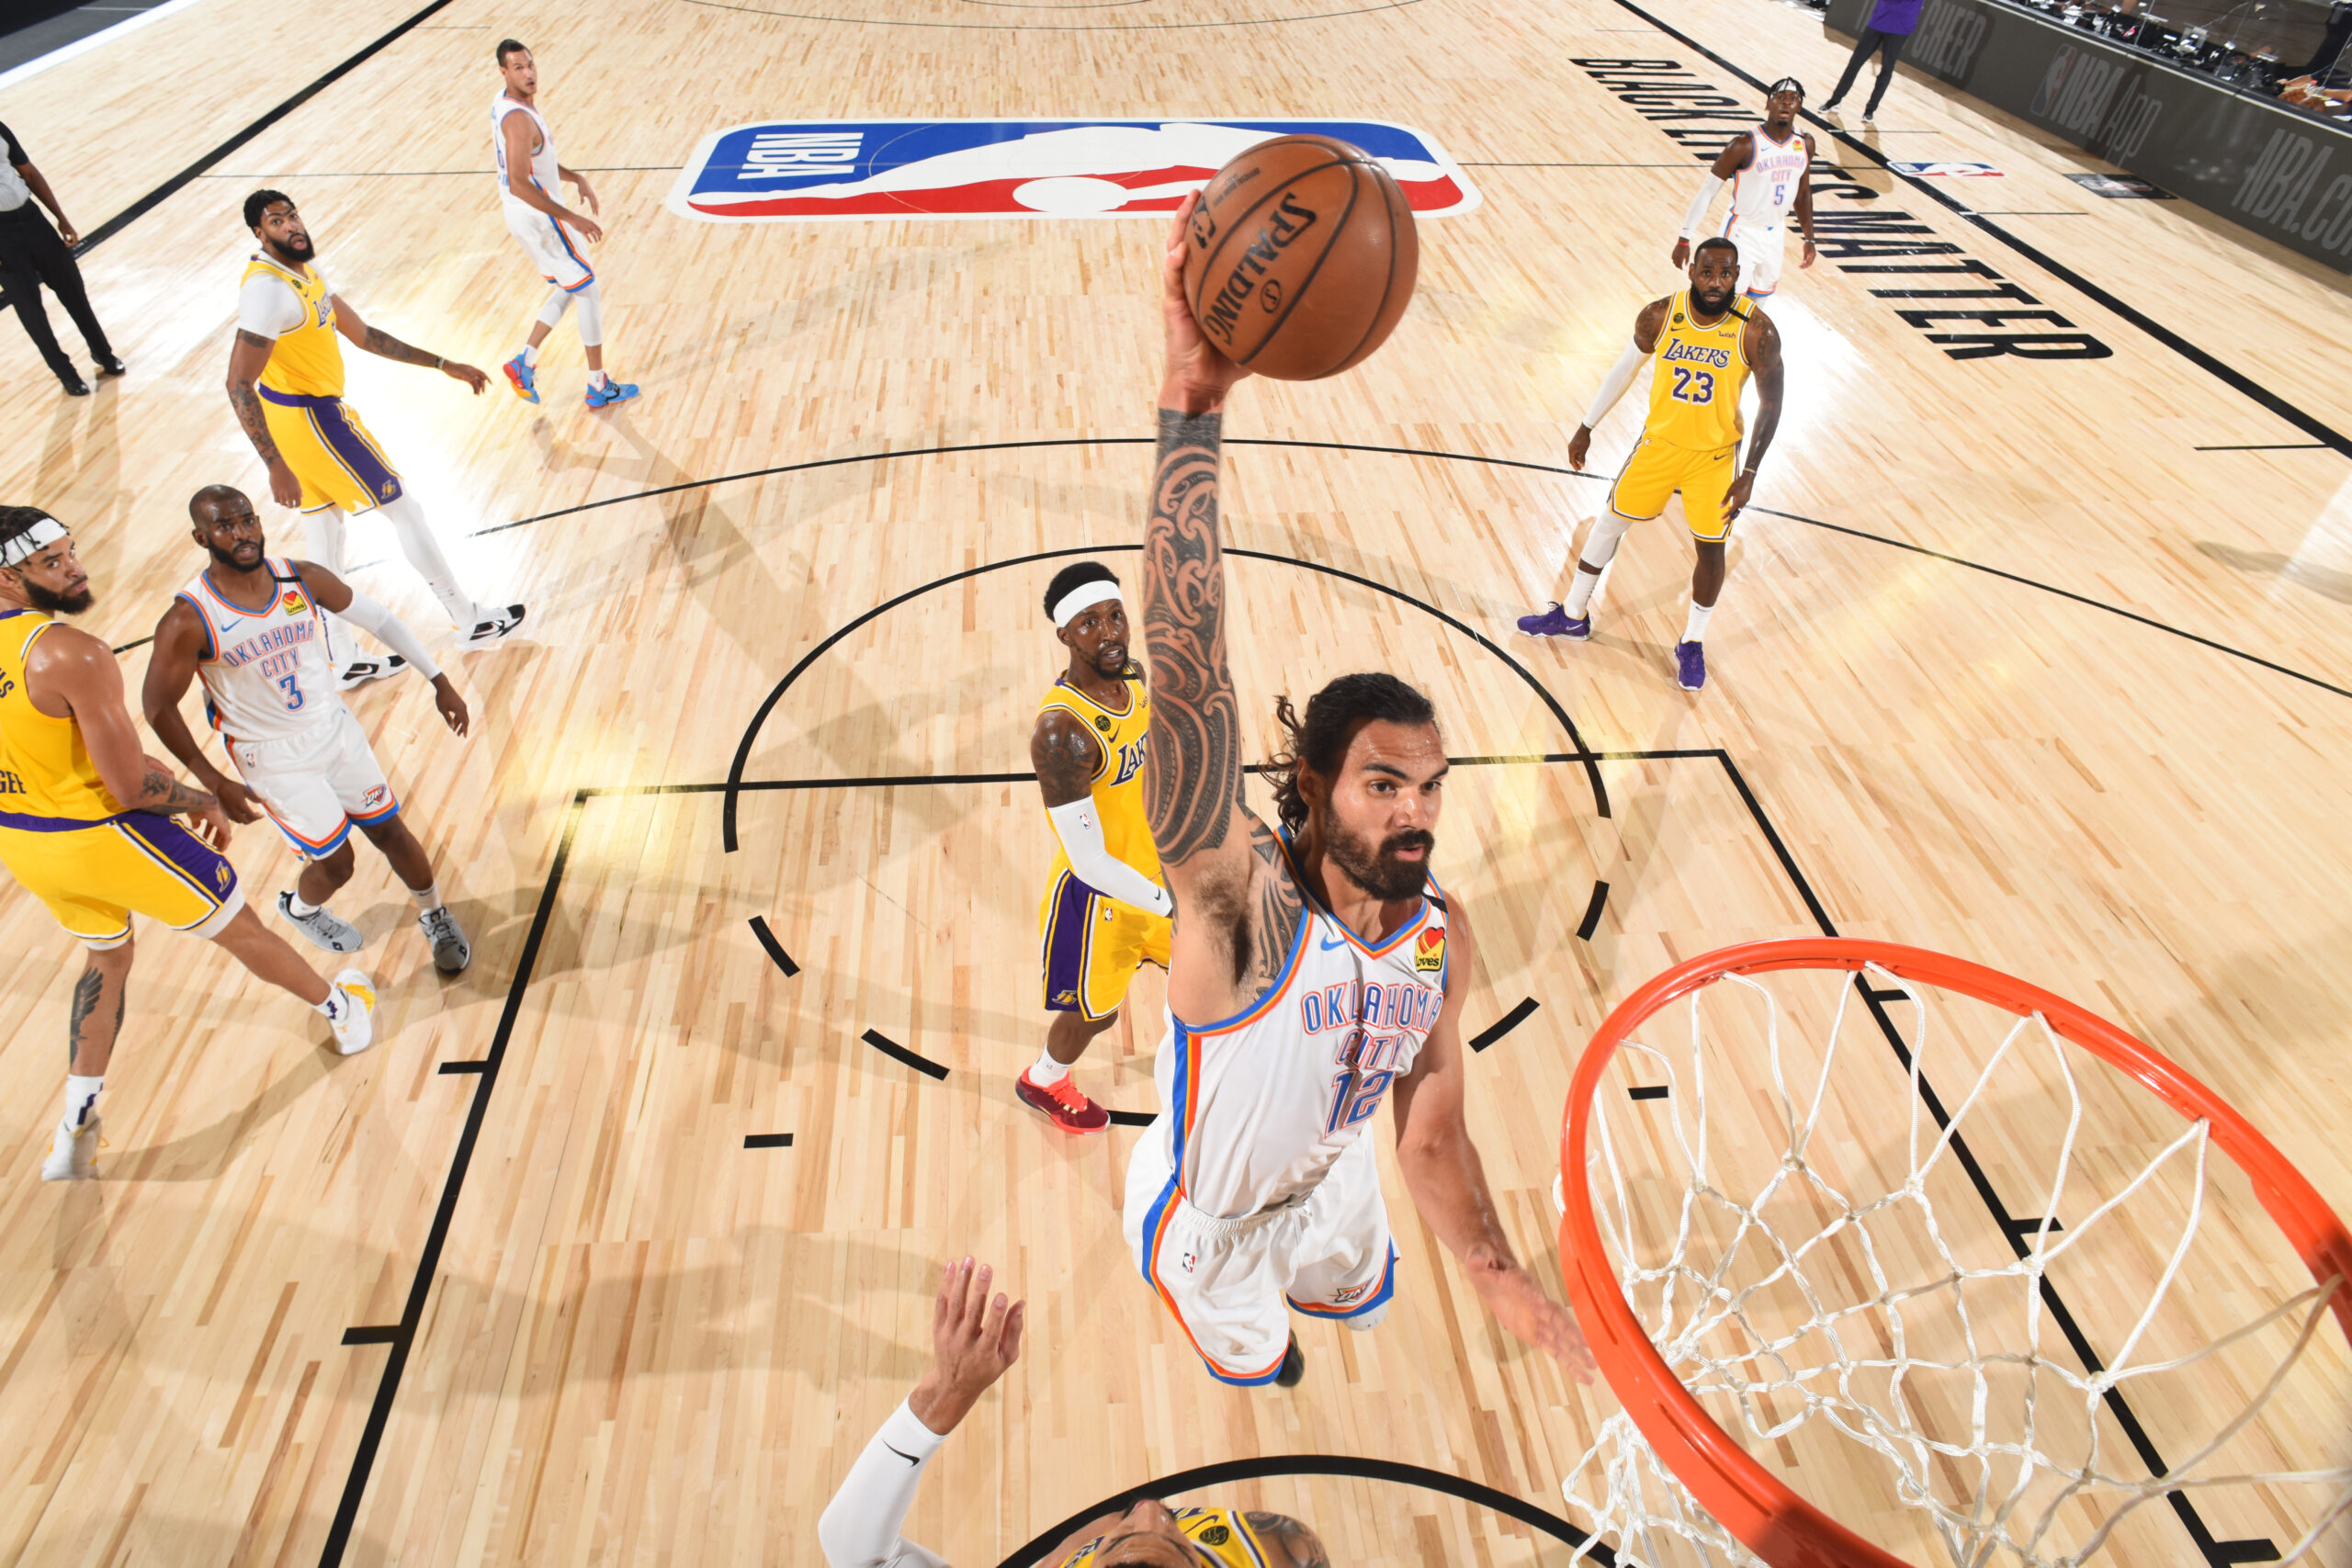 Pelicans finalize trade for Thunder's Steven Adams